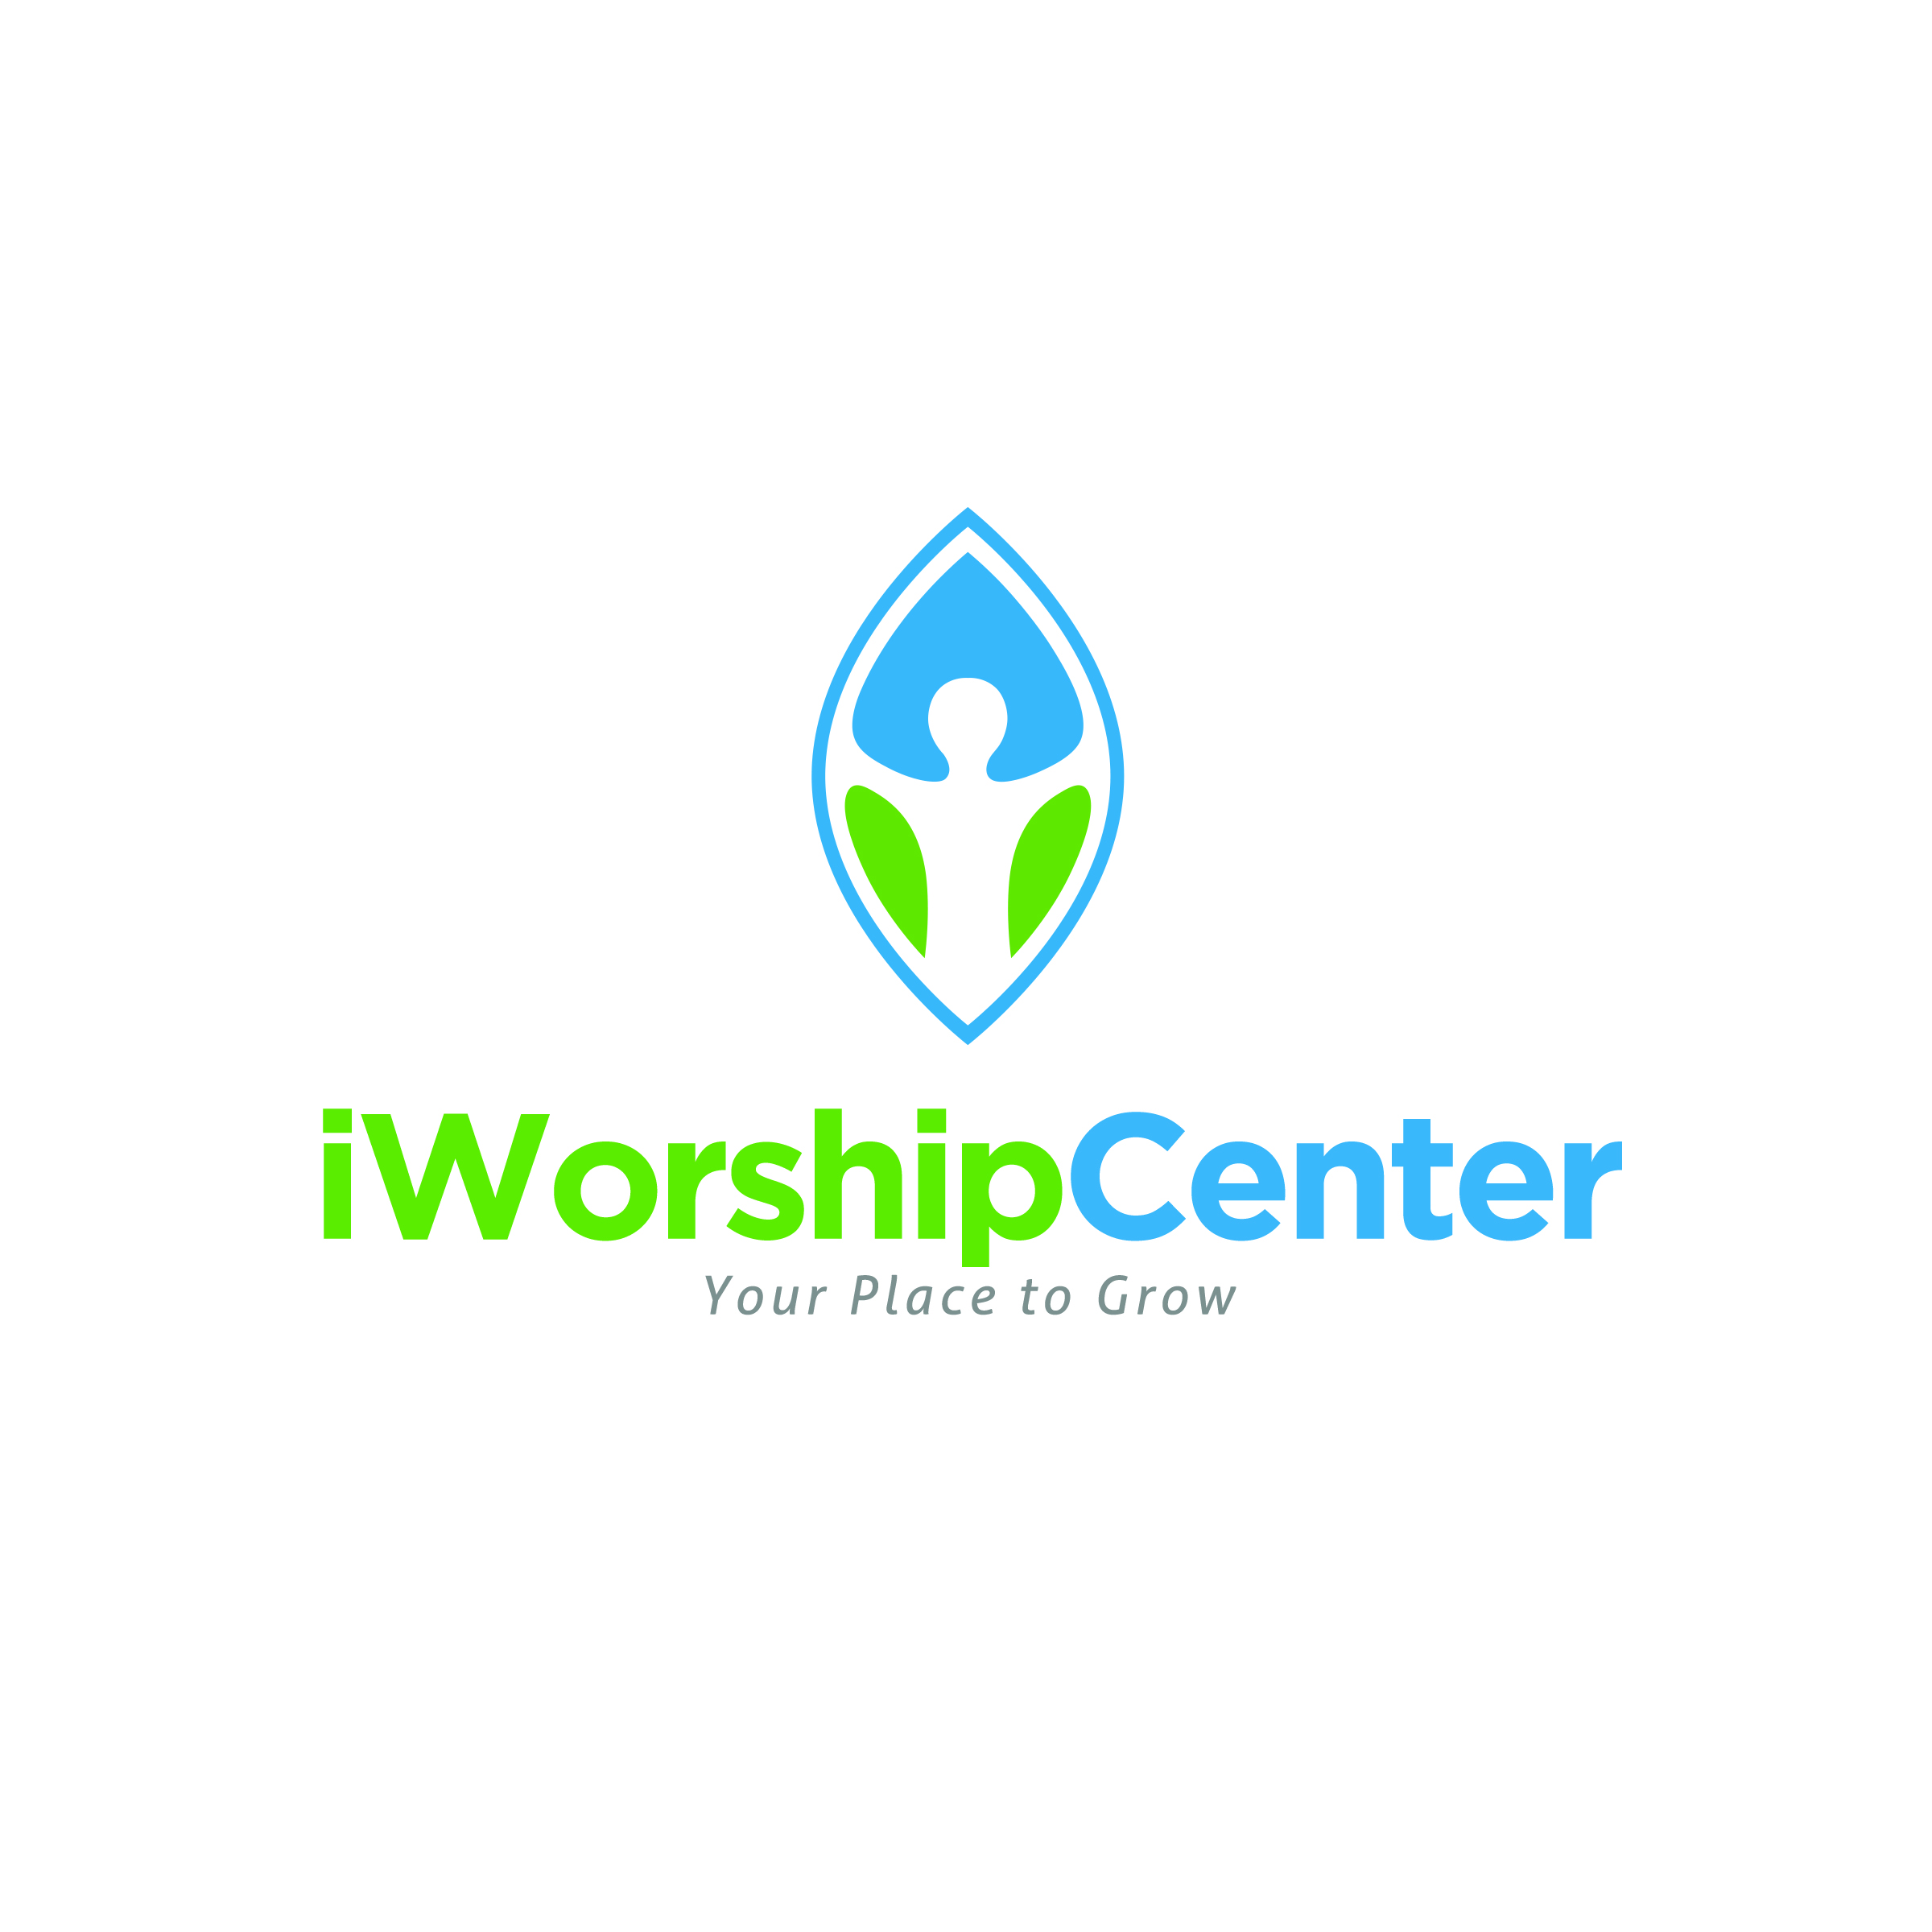 iWorshipCenter